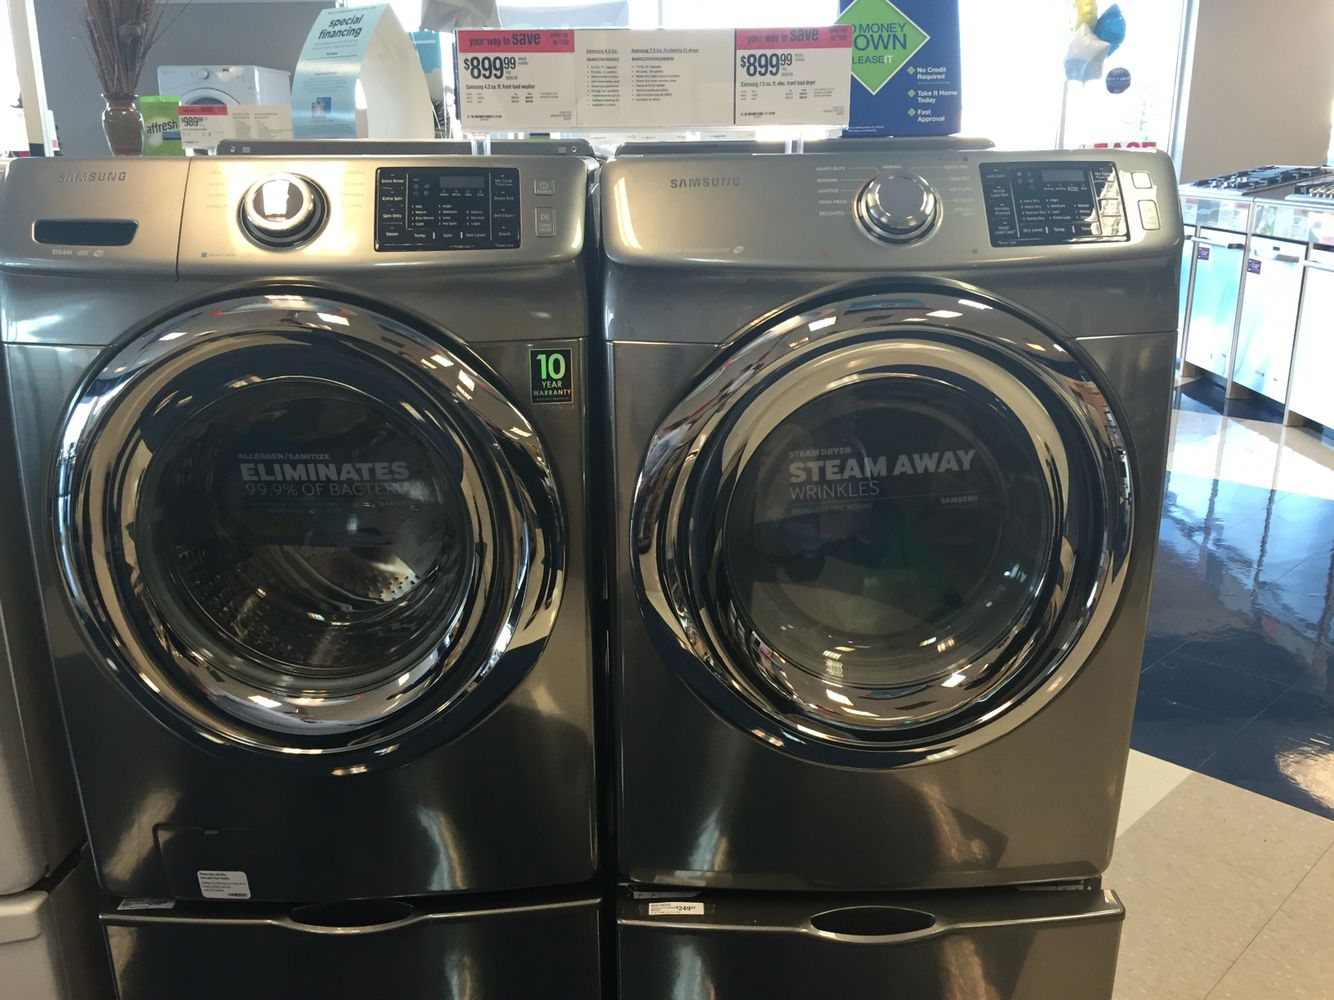 Sears Samsung washer dryer | Appliances | Pinterest